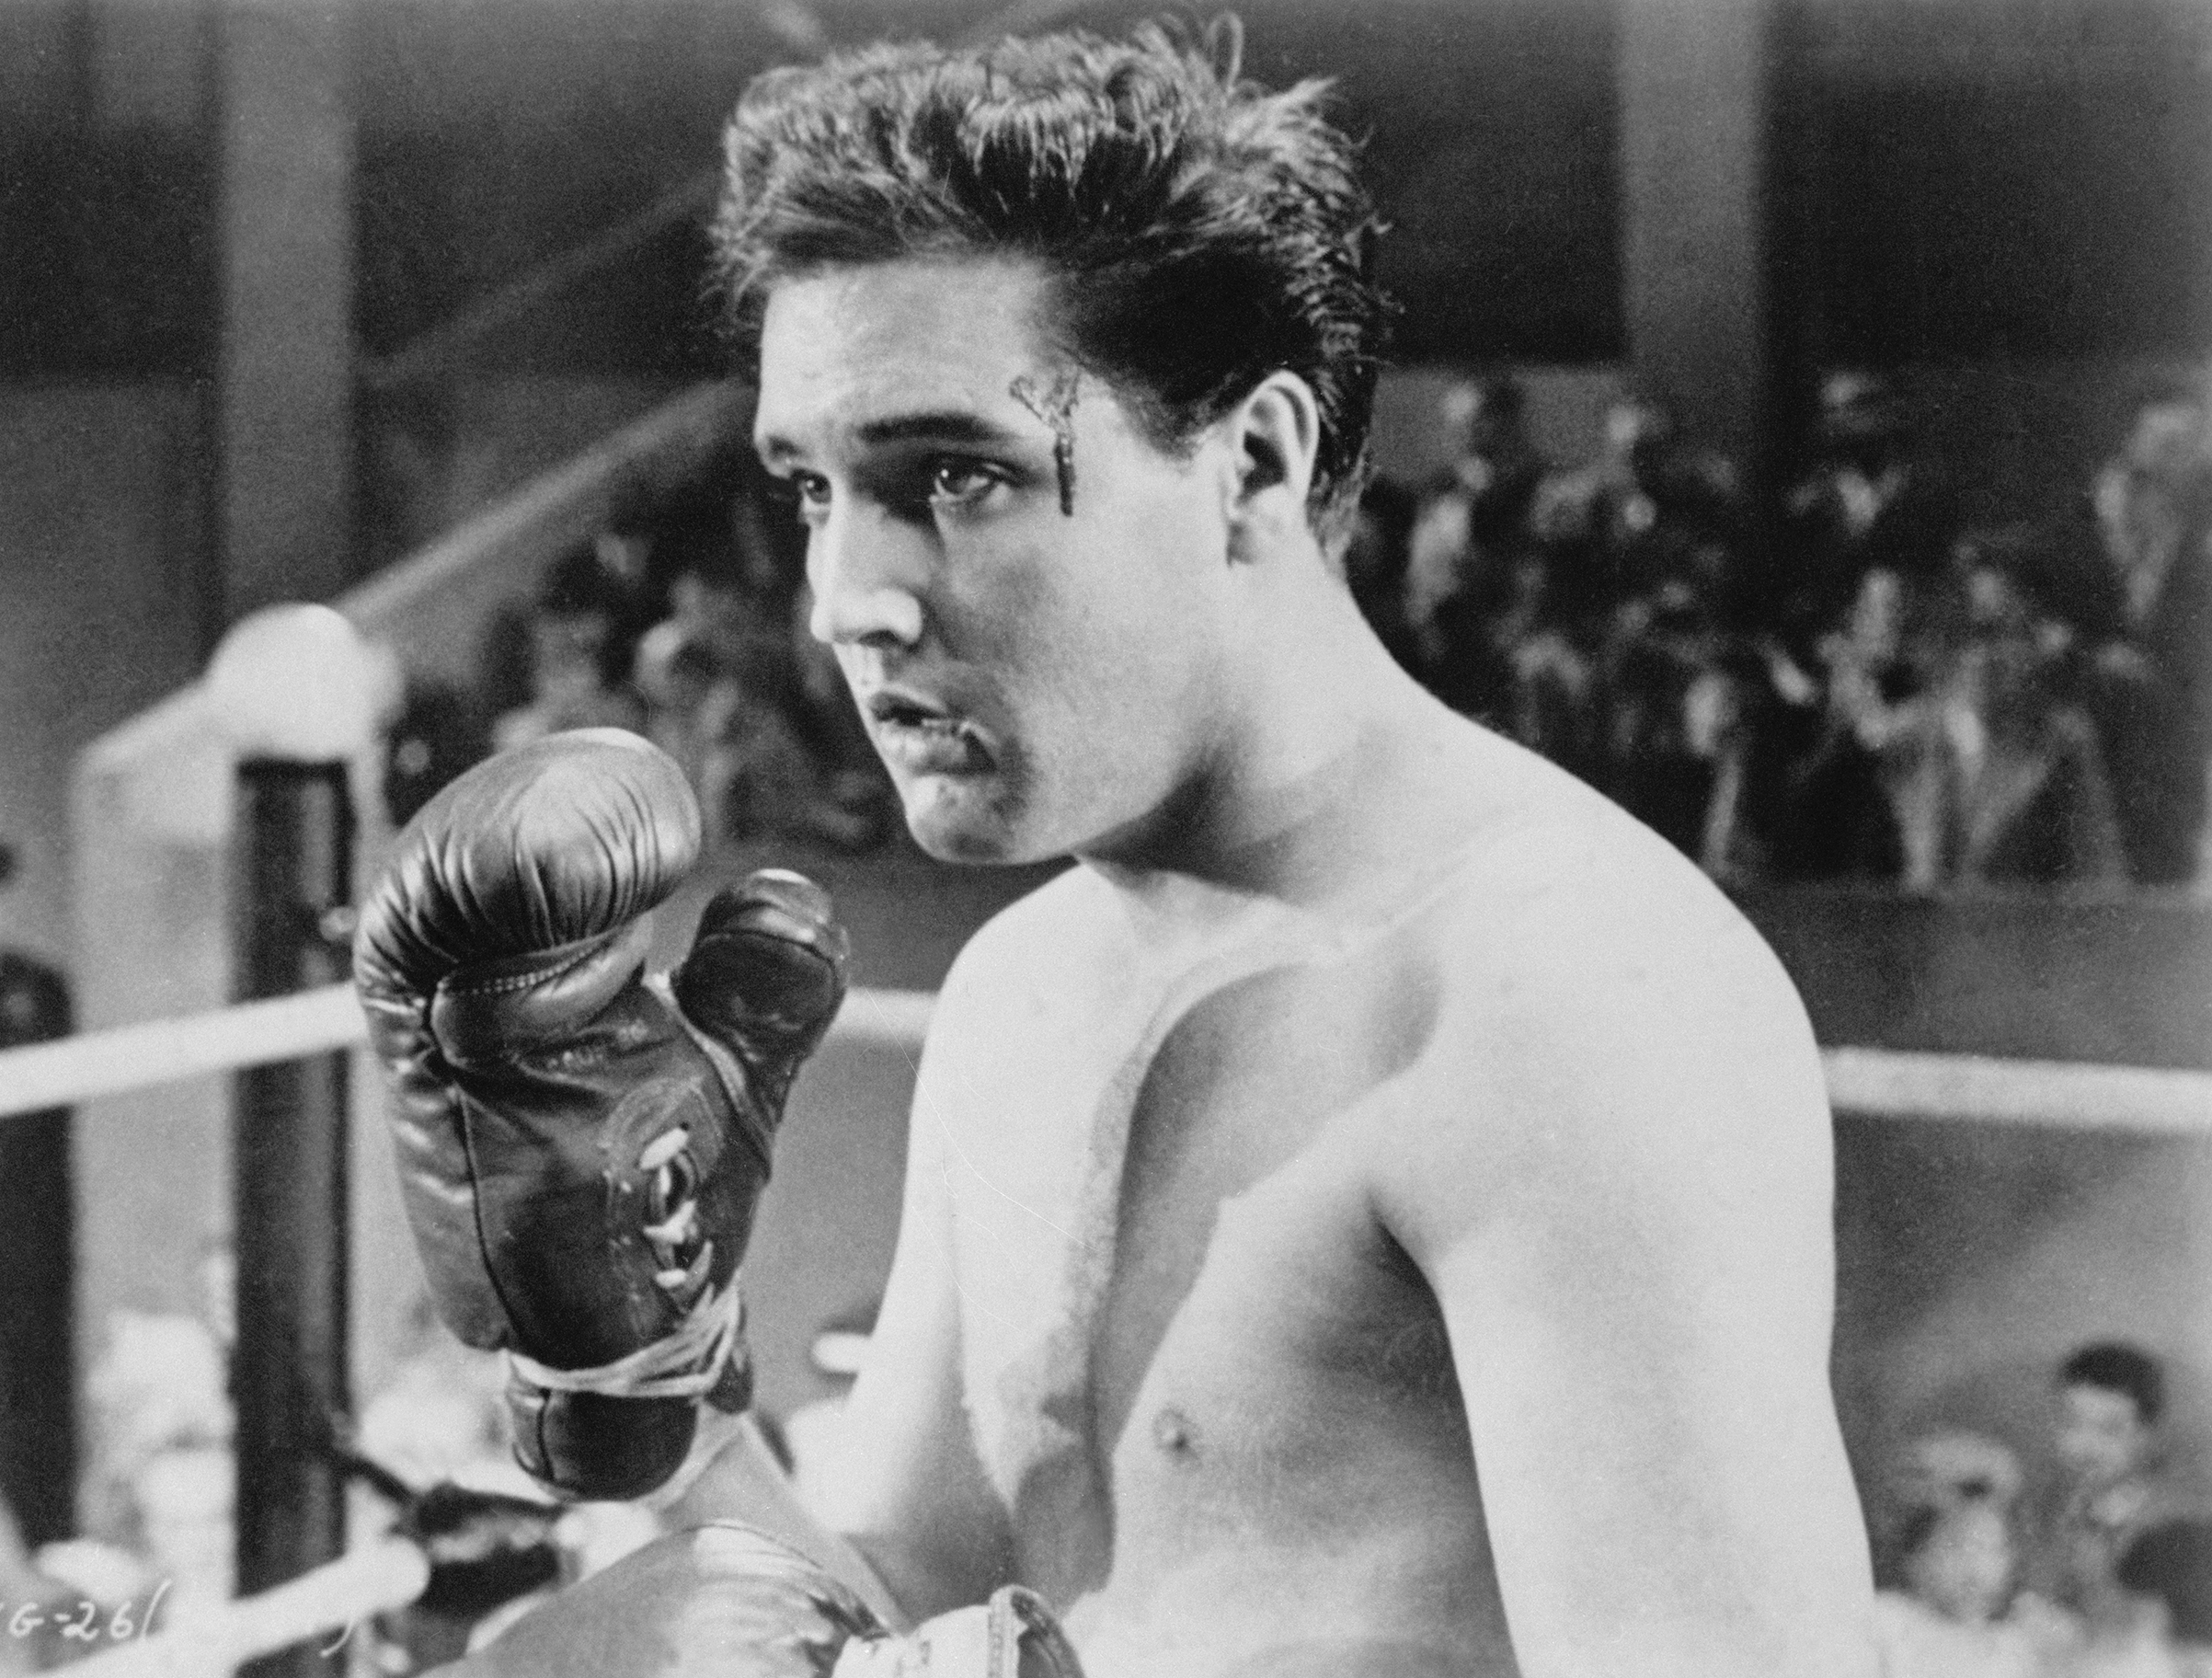 Kid Galahad : 1962, Elvis in makeup during the remake of an old boxing film.